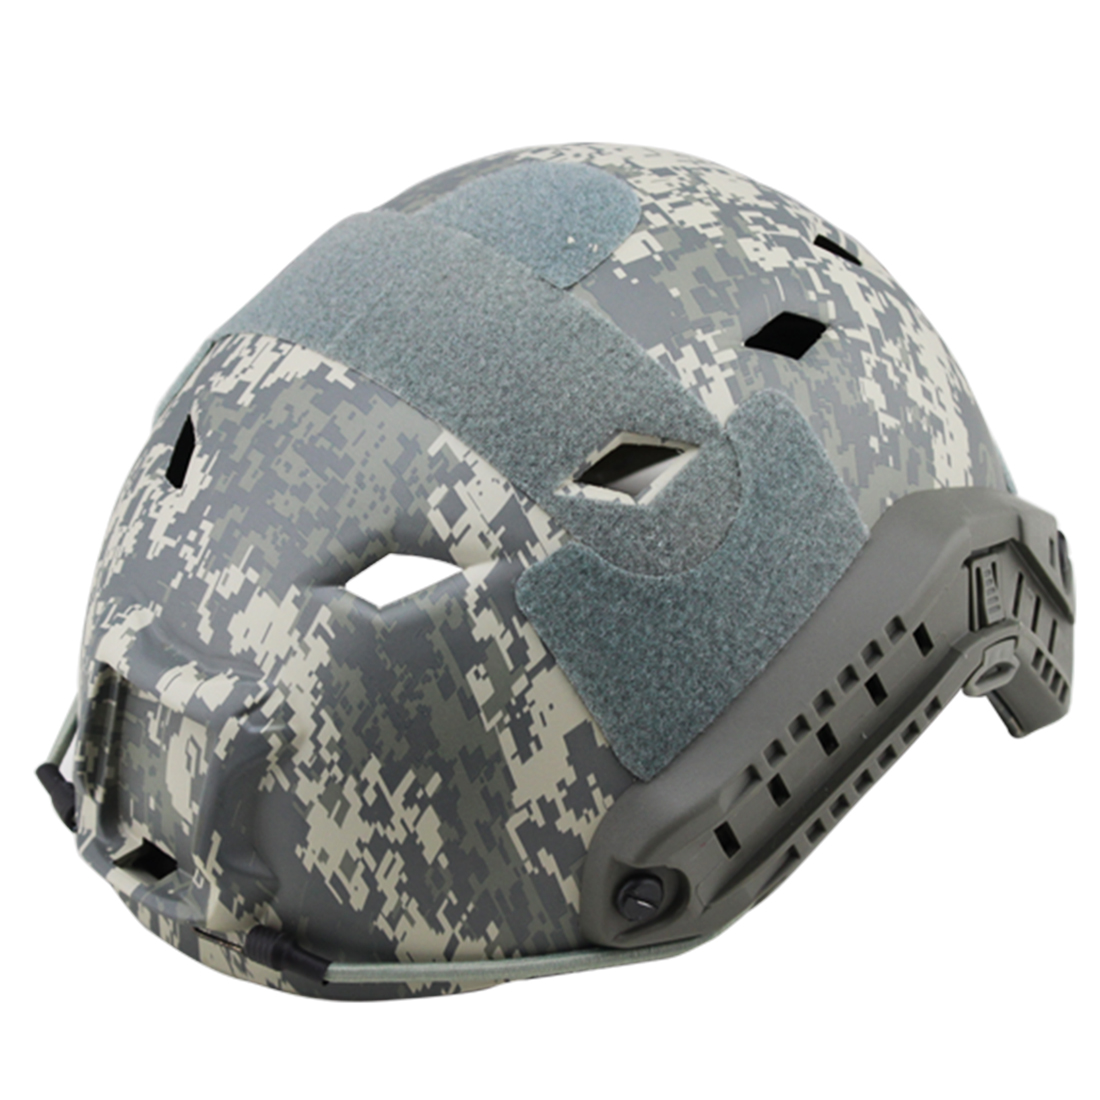 Surwish Camouflage Tactics Protective Helmet for FAST Pore-rhomb Helmet Outdoor Activity - AT nfstrike steel wire protective fast helmet suit for airsoft military tactics helmet for nerf accessories games outdoor activity